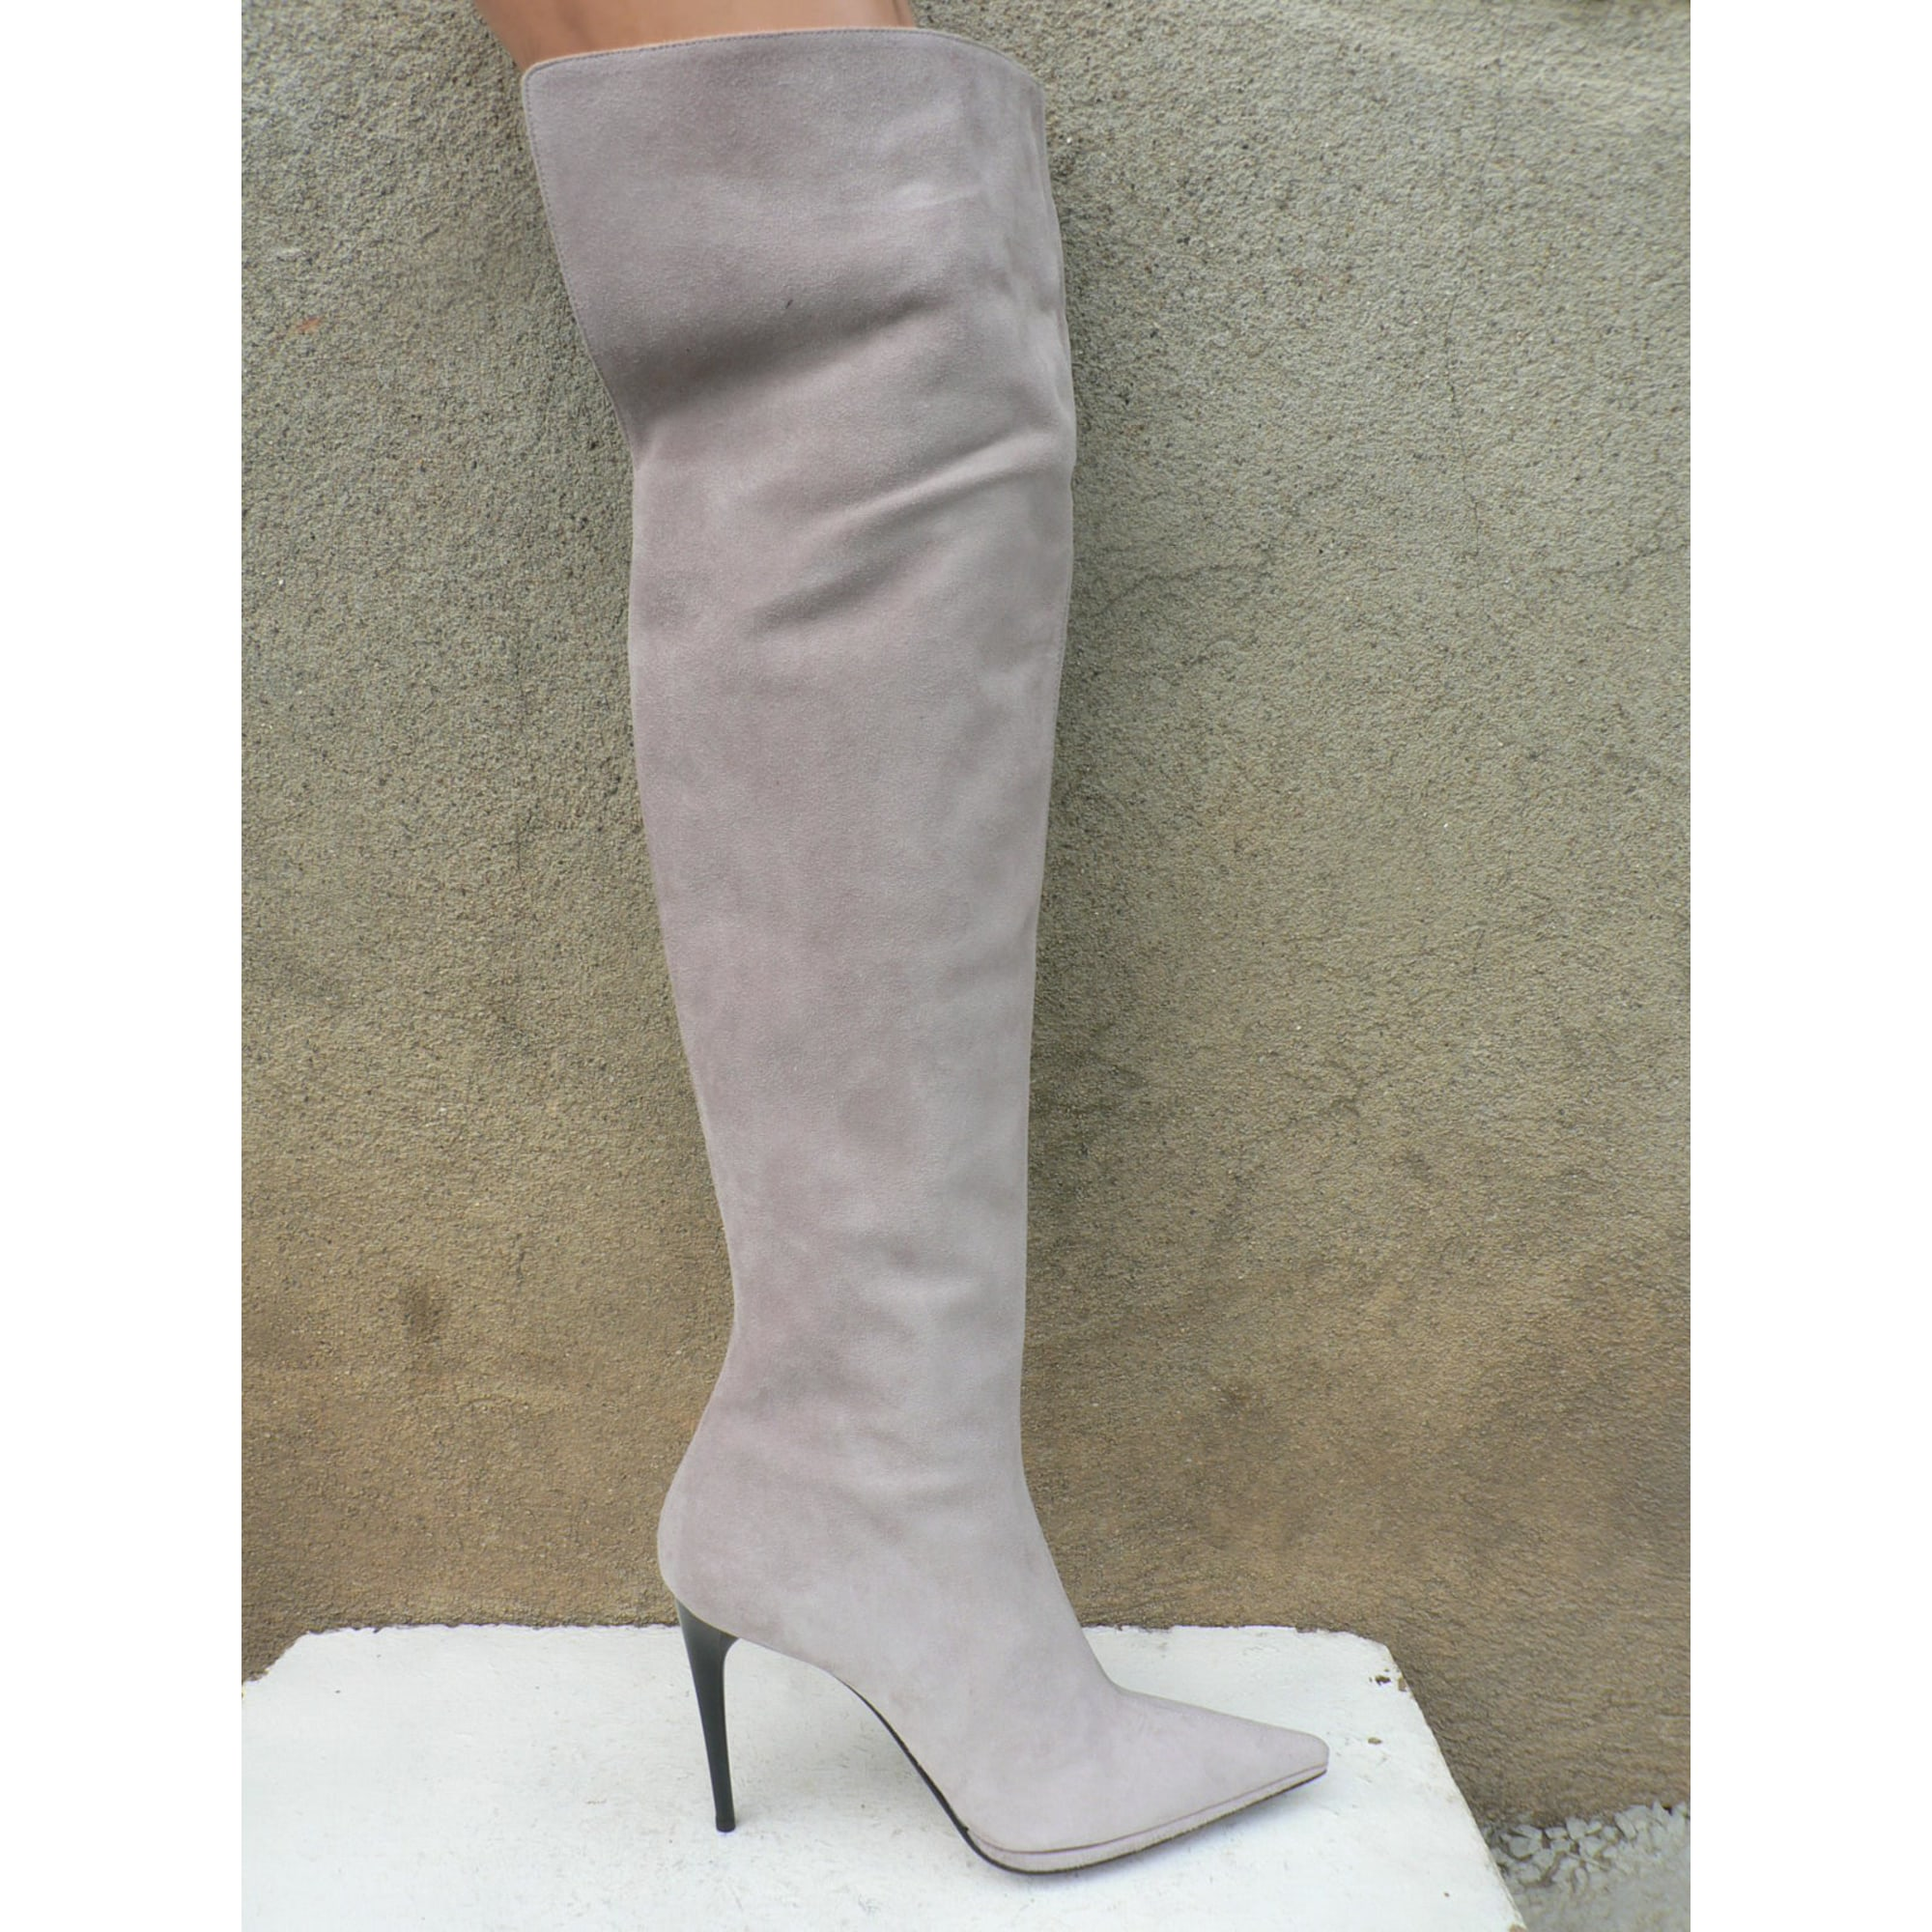 Le Silla Boots Thigh High Boots Le Silla 41 Purple 5618570